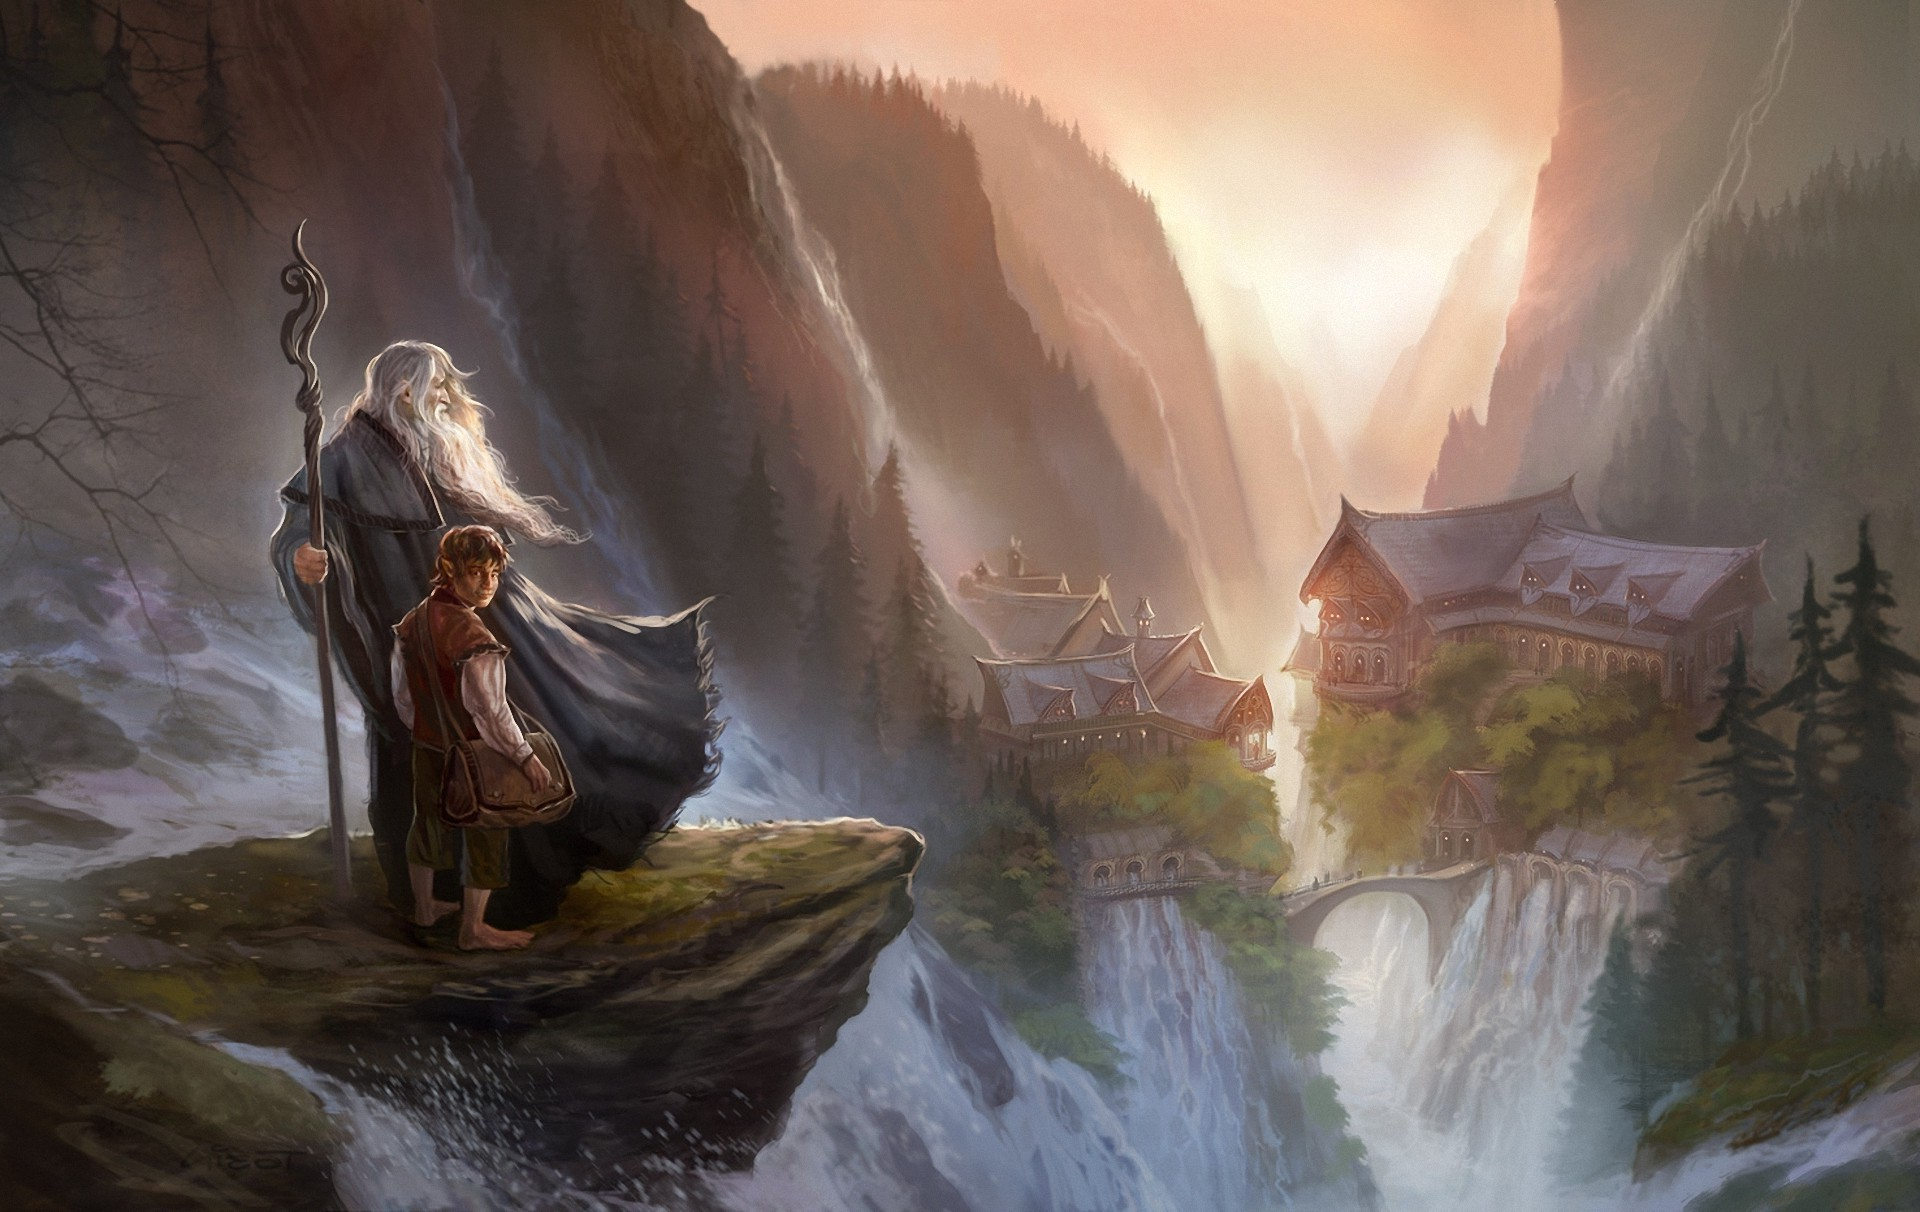 Res: 1920x1212, fantasy art digital art the lord of the rings the hobbit gandalf bilbo  baggins rivendell wallpaper and background